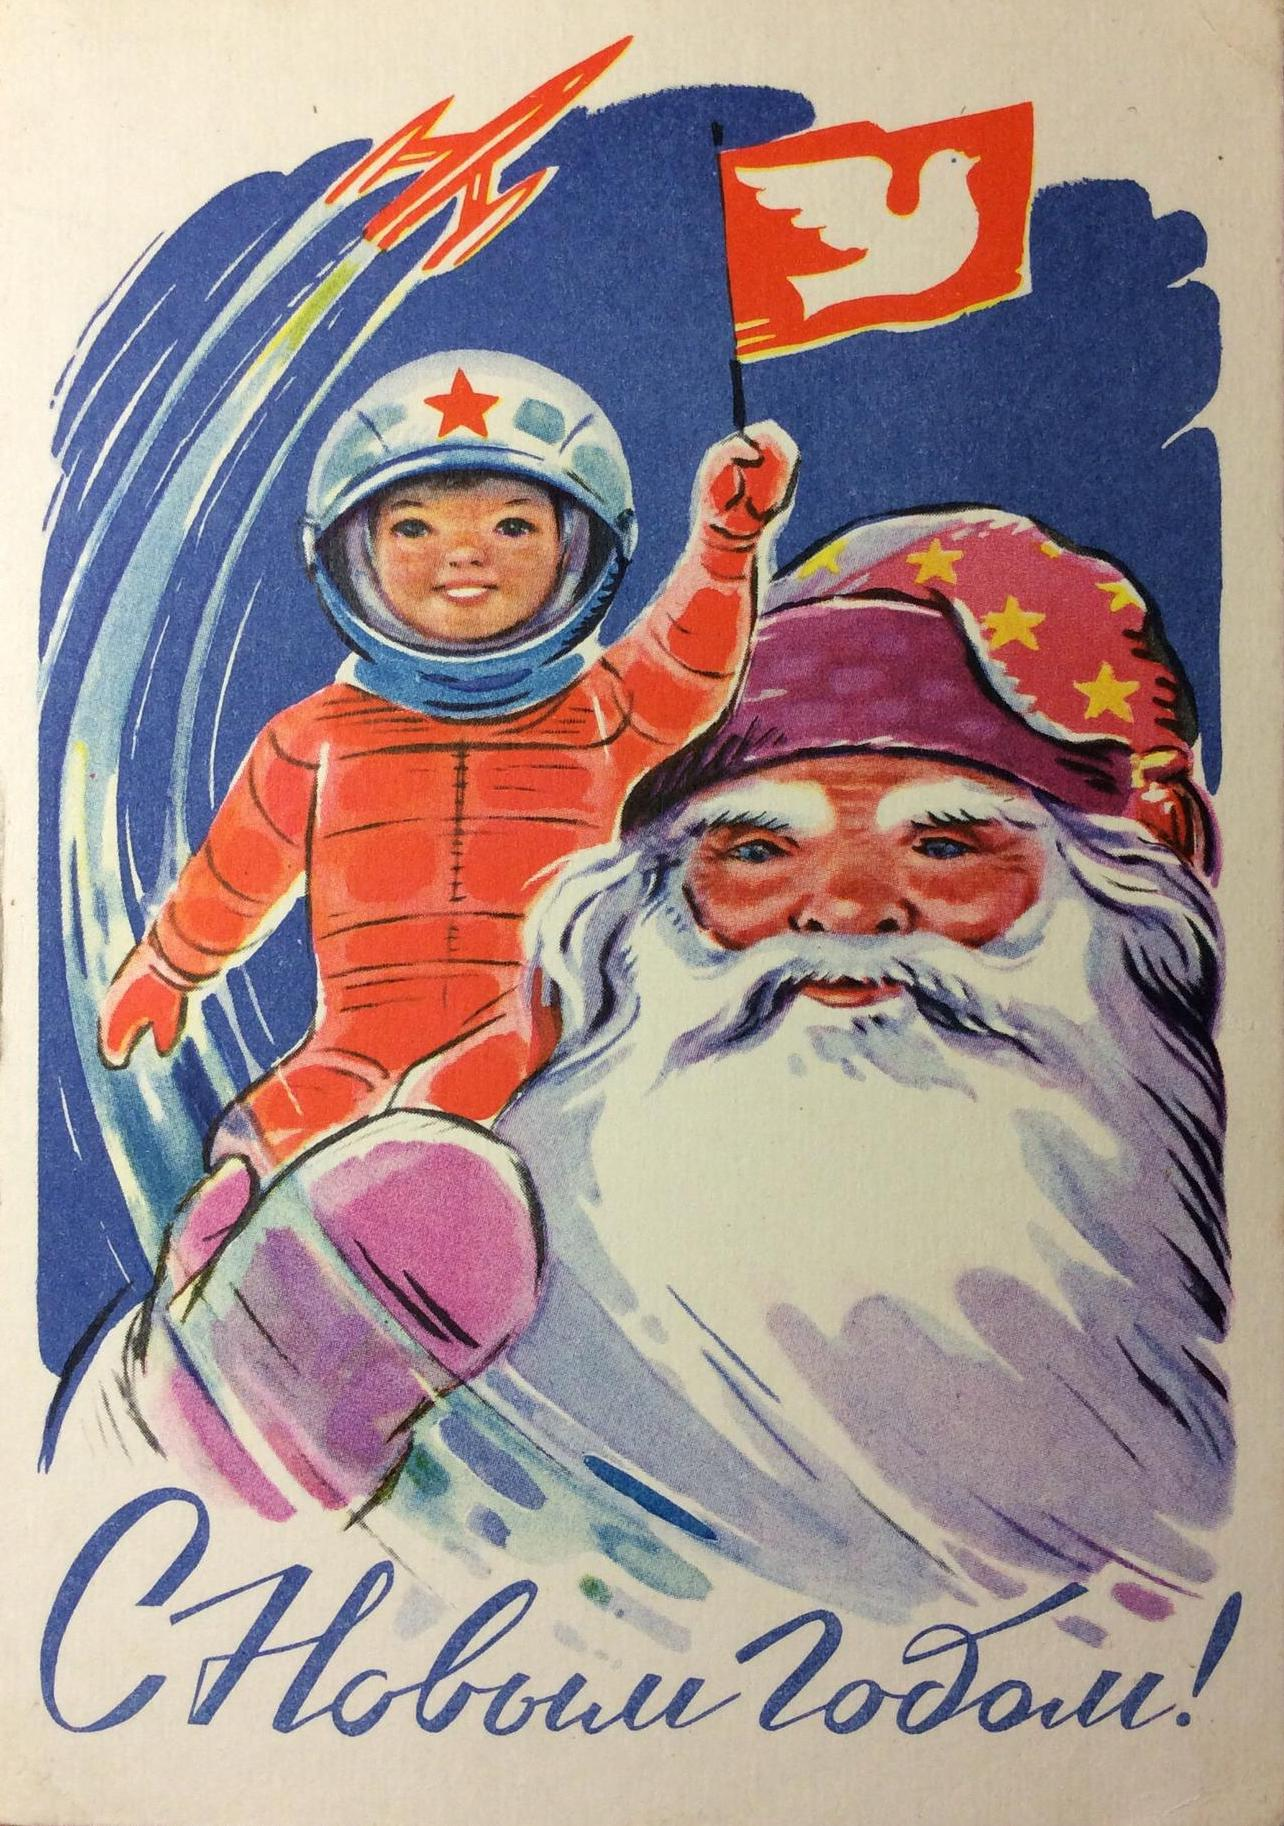 A 1962 New Year's card shows Ded Moroz holding a boy who waves a communist flag